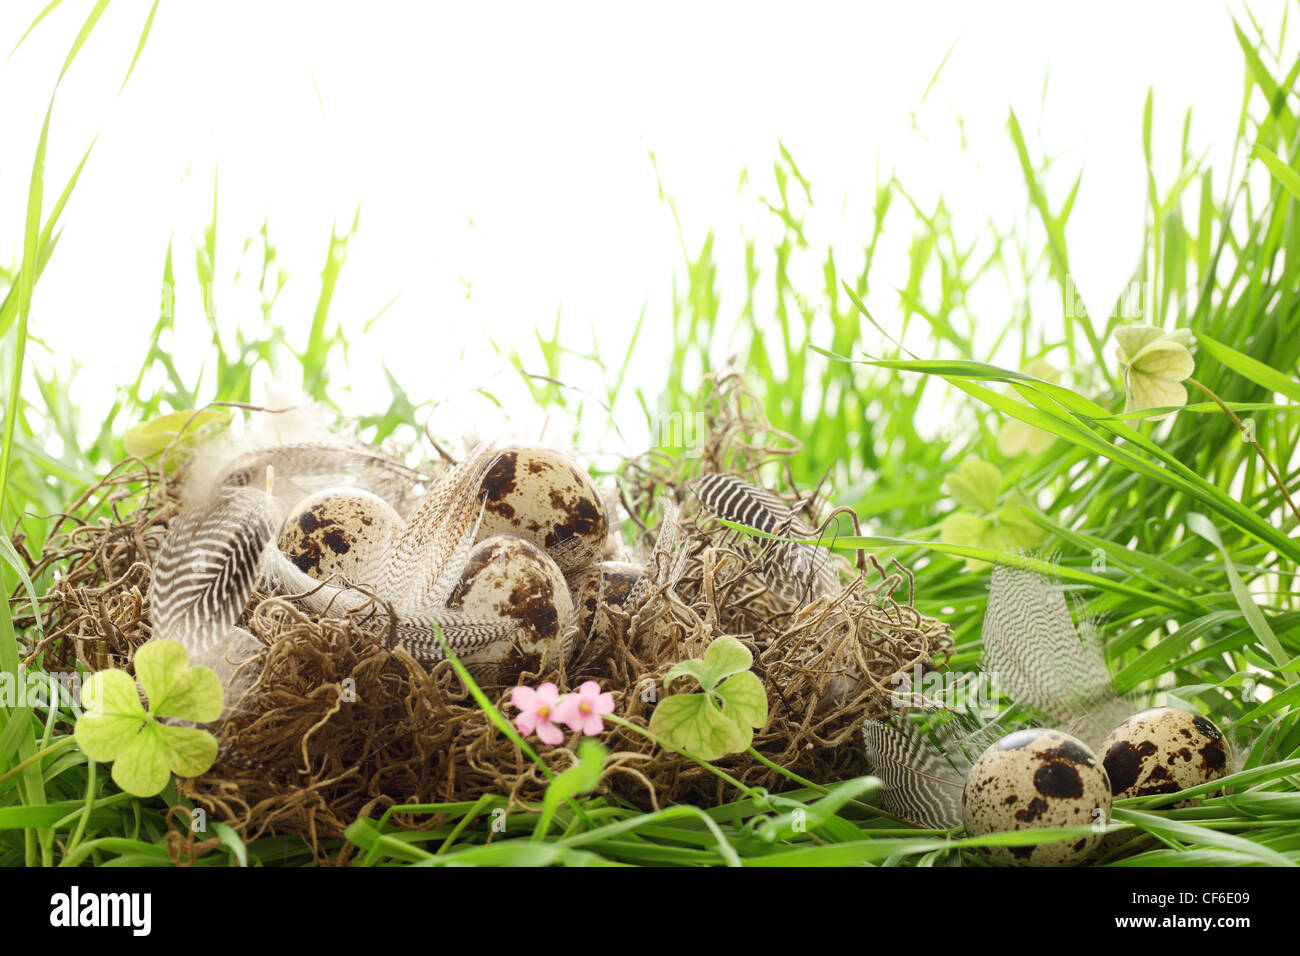 Speckled easter eggs with nest on grass - Stock Image